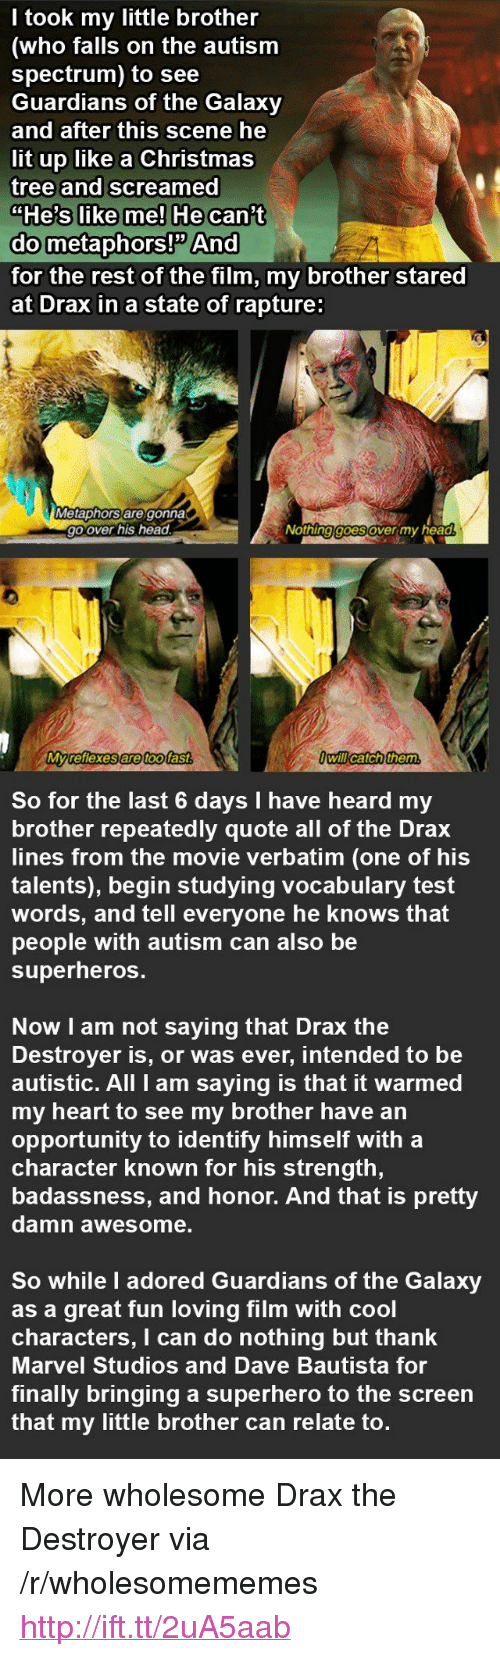 """rapture: I took my little brother  (who falls on the autism  spectrum) to see  Guardians of the Galaxy  and after this scene he  lit up like a Christmas  tree and screamed  do metaphors! And  for the rest of the film, my brother stared  at Drax in a state of rapture:  Metaphors are gonna  go over his head  Nothing goesover my head  Myreflexes are toofast  Owill catch them  So for the last 6 days I have heard my  brother repeatedly quote all of the Drax  lines from the movie verbatim (one of his  talents), begin studying vocabulary test  words, and tell everyone he knows that  people with autism can also be  superheros  Now I am not saying that Drax the  Destroyer is, or was ever, intended to be  autistic. All I am saying is that it warmed  my heart to see my brother have an  opportunity to identify himself with a  character known for his strength,  badassness, and honor. And that is pretty  damn awesome.  So while I adored Guardians of the Galaxy  as a great fun loving film with cool  characters, I can do nothing but thank  Marvel Studios and Dave Bautista for  finally bringing a superhero to the screen  that my little brother can relate to. <p>More wholesome Drax the Destroyer via /r/wholesomememes <a href=""""http://ift.tt/2uA5aab"""">http://ift.tt/2uA5aab</a></p>"""